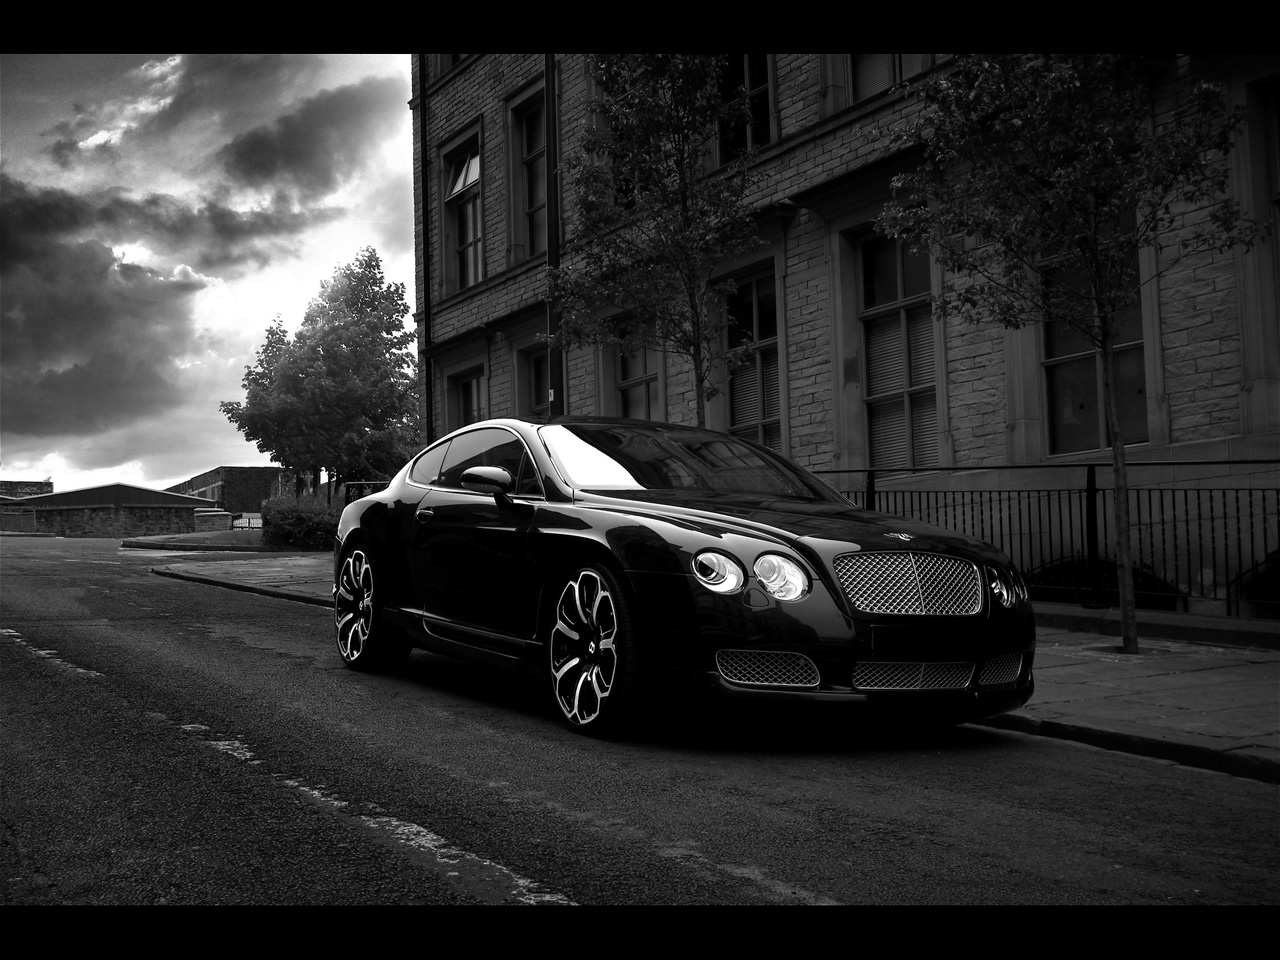 Cars Hd Wallpaper For Desktop: TOP HD WALLPAPERS: CARS WALLPAPERS DESKTOP HD